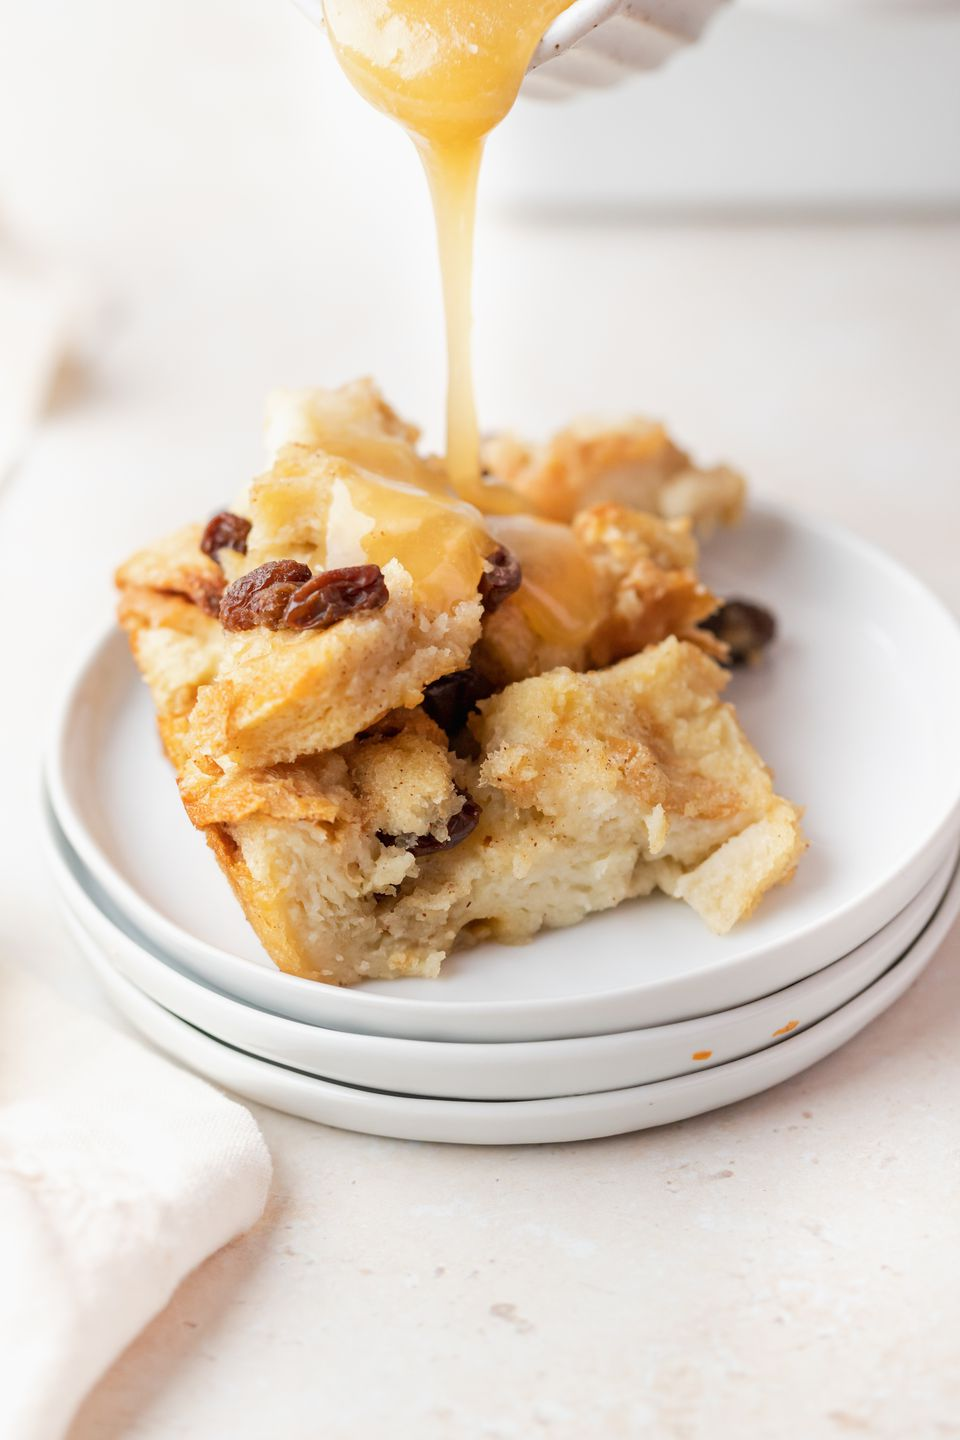 Pouring bread pudding sauce over a plate of bread pudding.